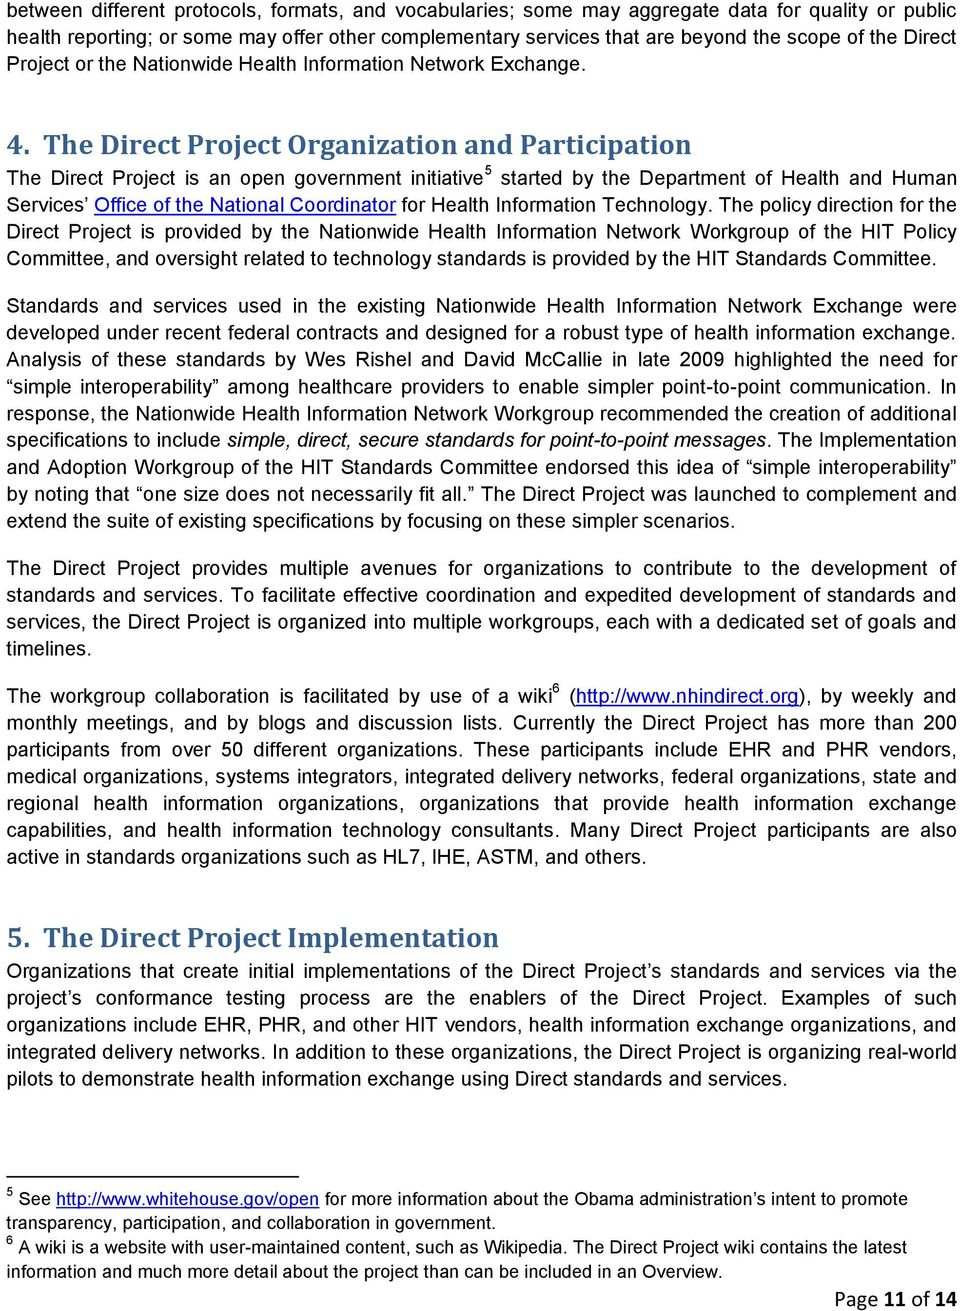 The Direct Project Organization and Participation The Direct Project is an open government initiative 5 started by the Department of Health and Human Services Office of the National Coordinator for